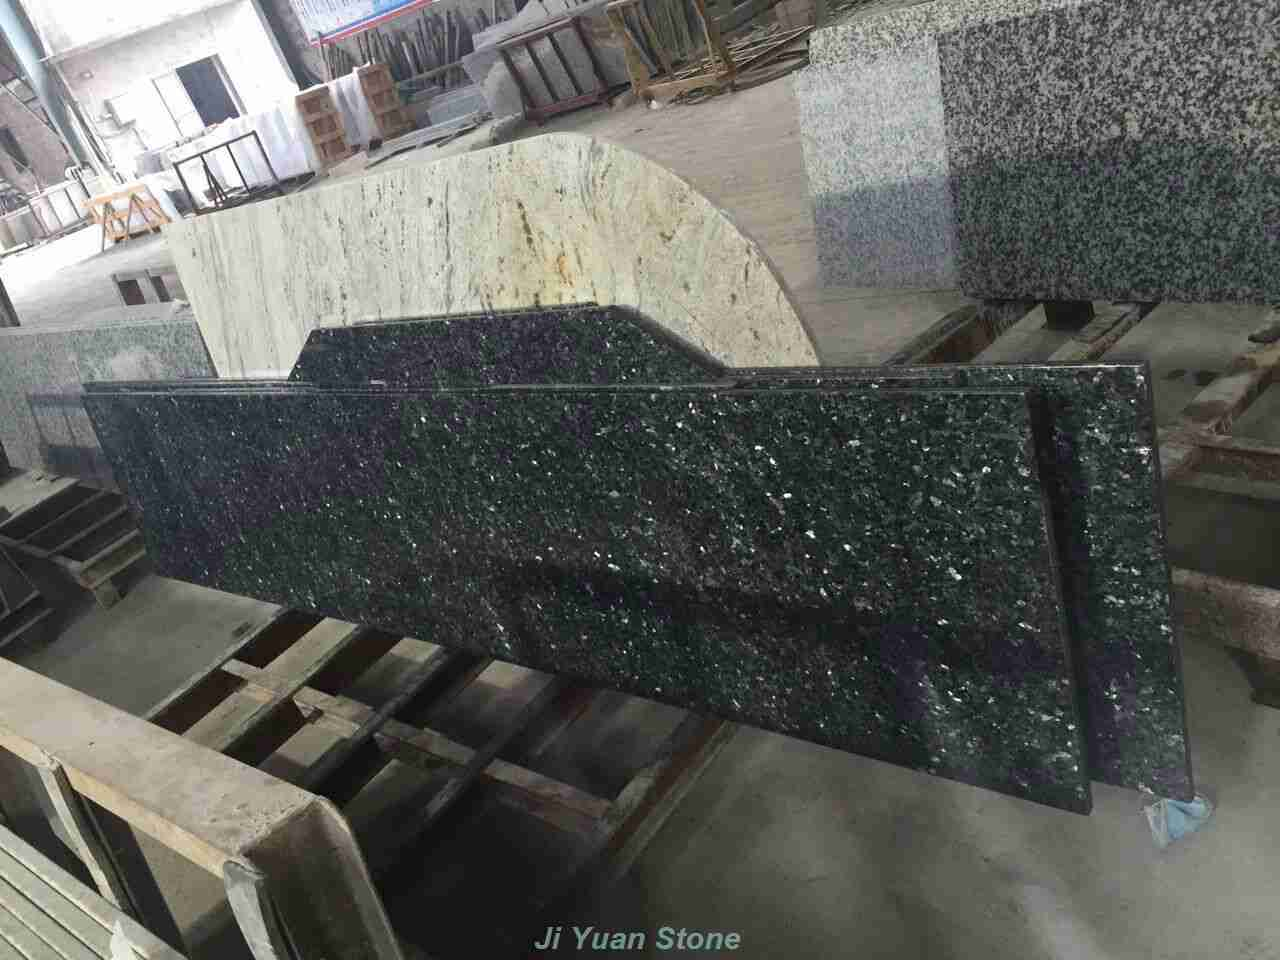 Blue pearl granite backsplash,blue pearl marble,blue pearl gt,blue pearl quartz countertop,black and blue granite,blue granite kitchen,pearl countertops,white and blue granite